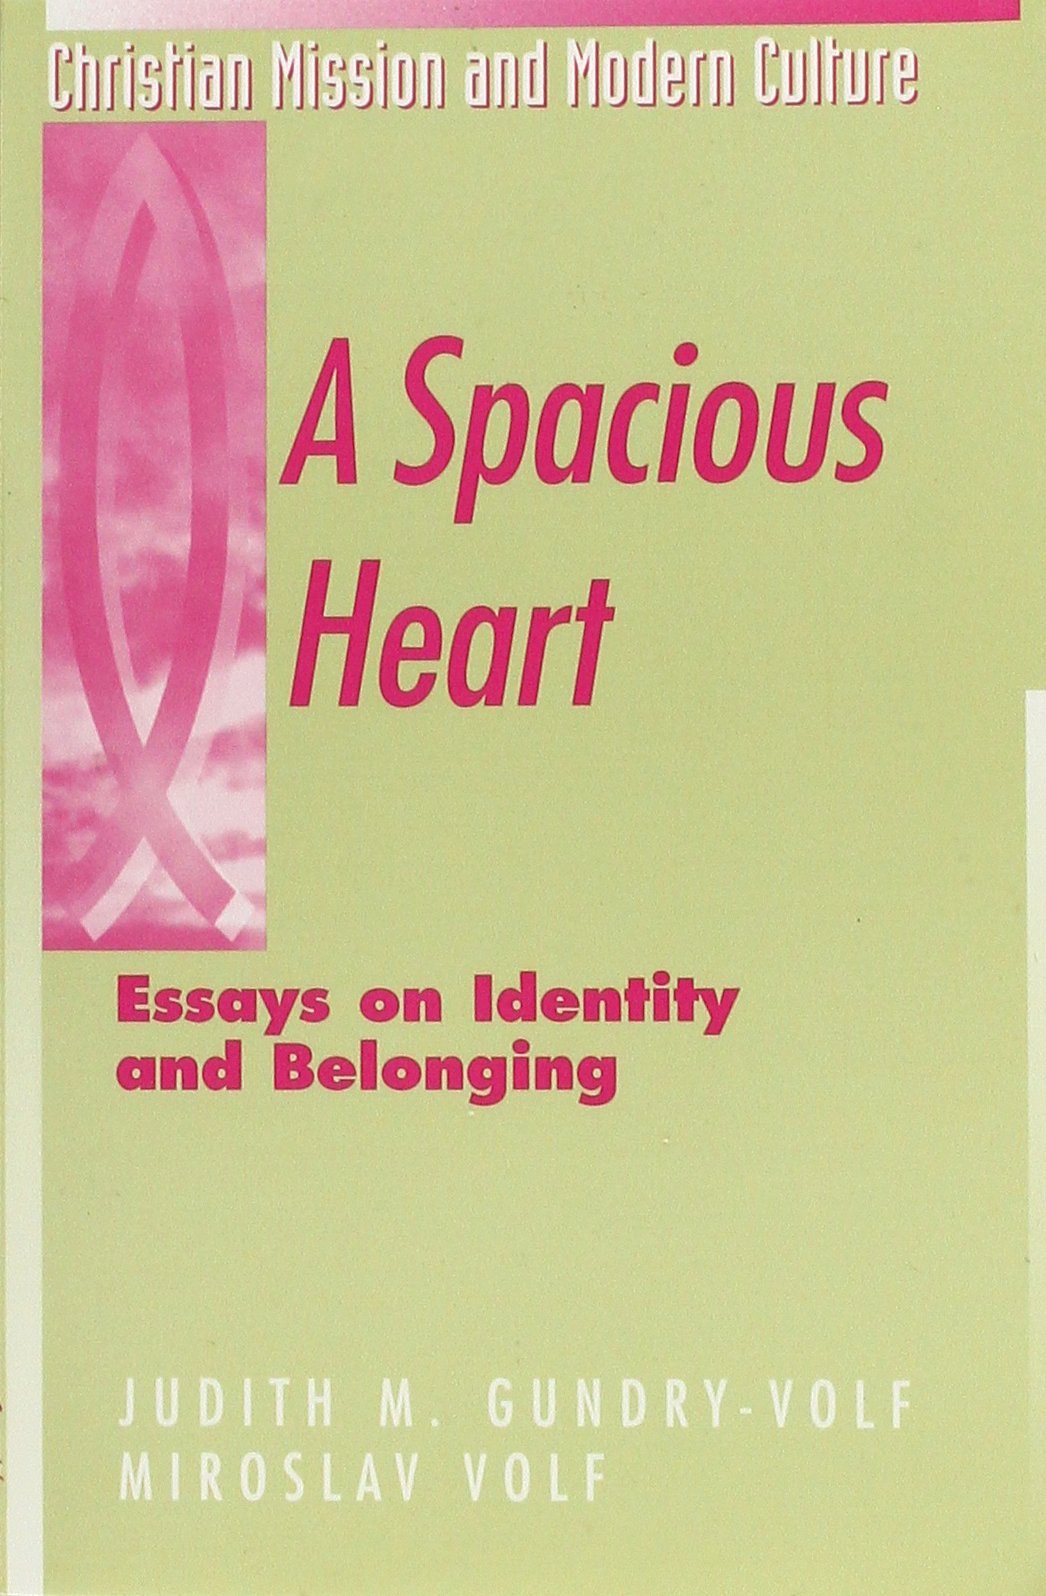 a spacious heart essays on identity and belonging